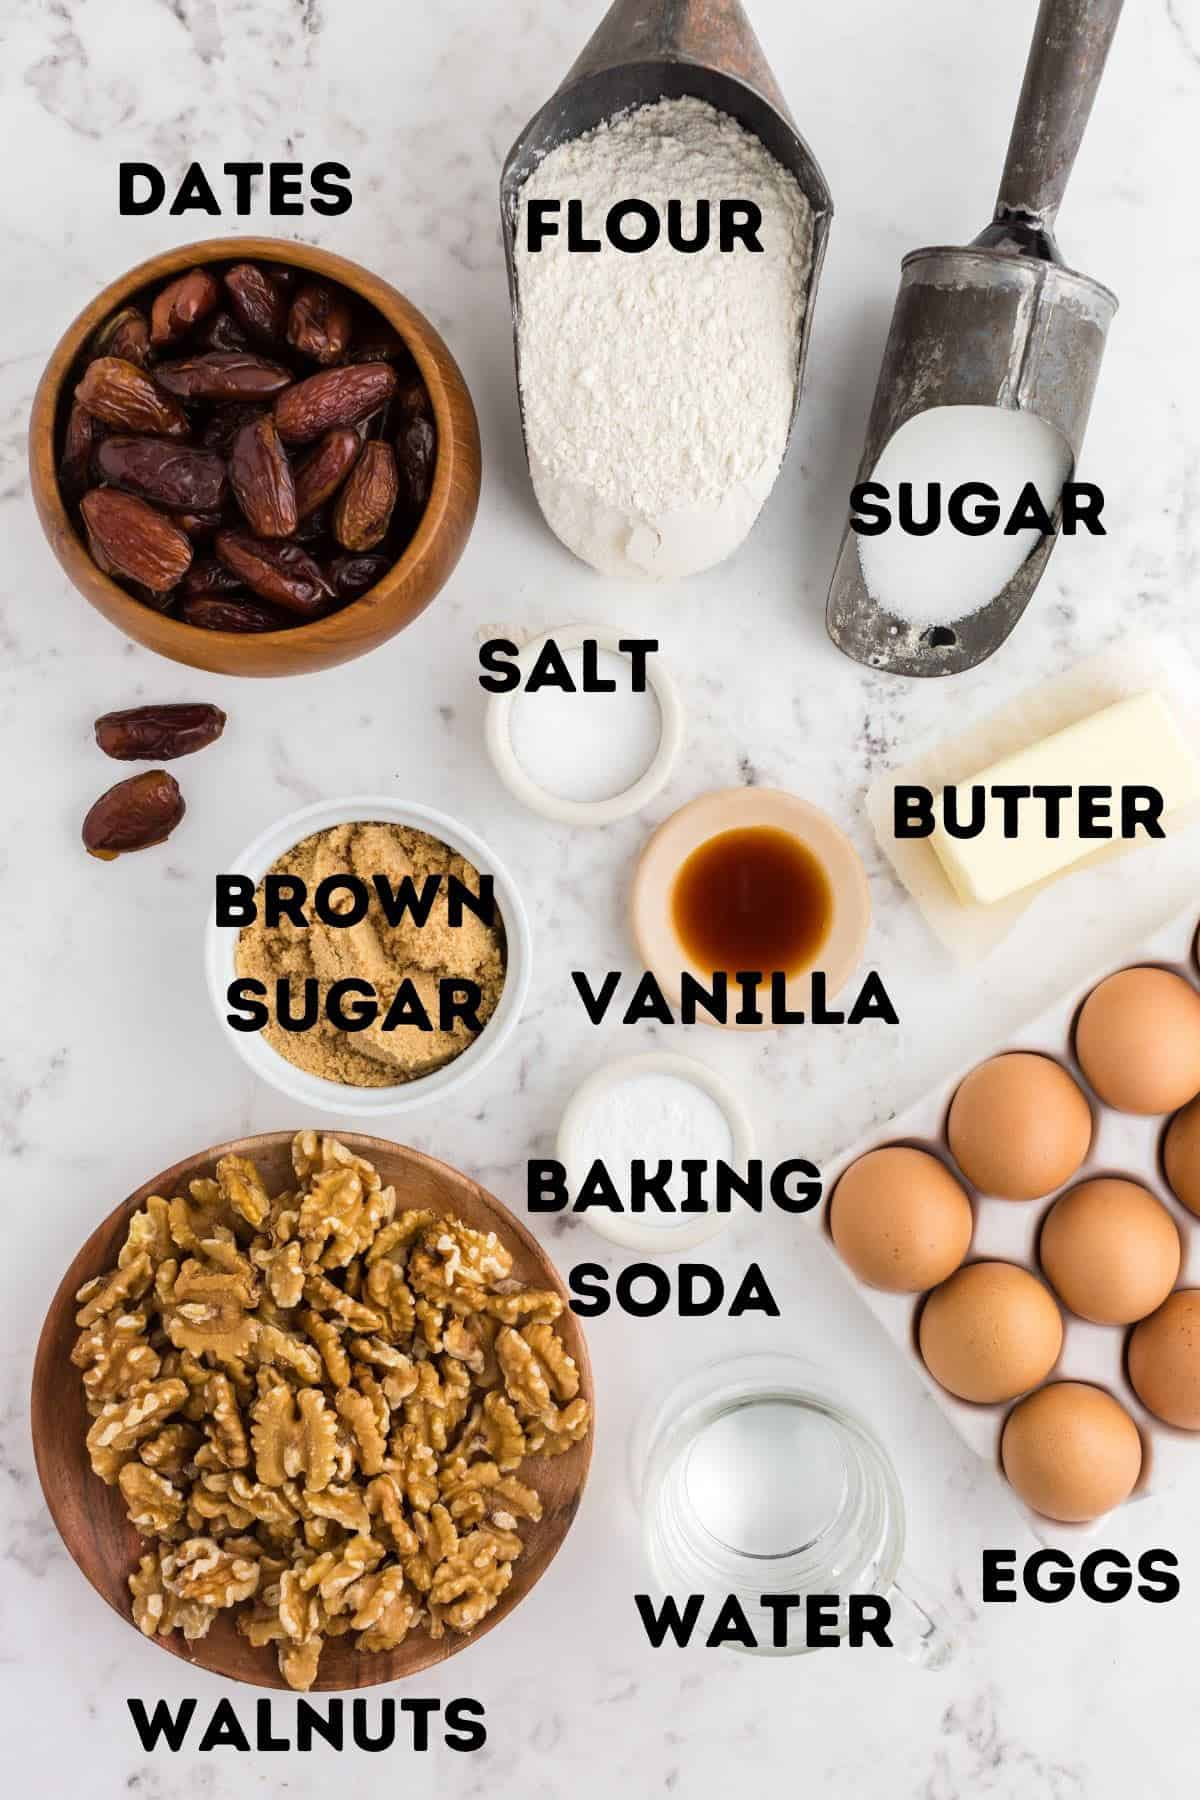 Flour, dates, sugar, and other cookie ingredients